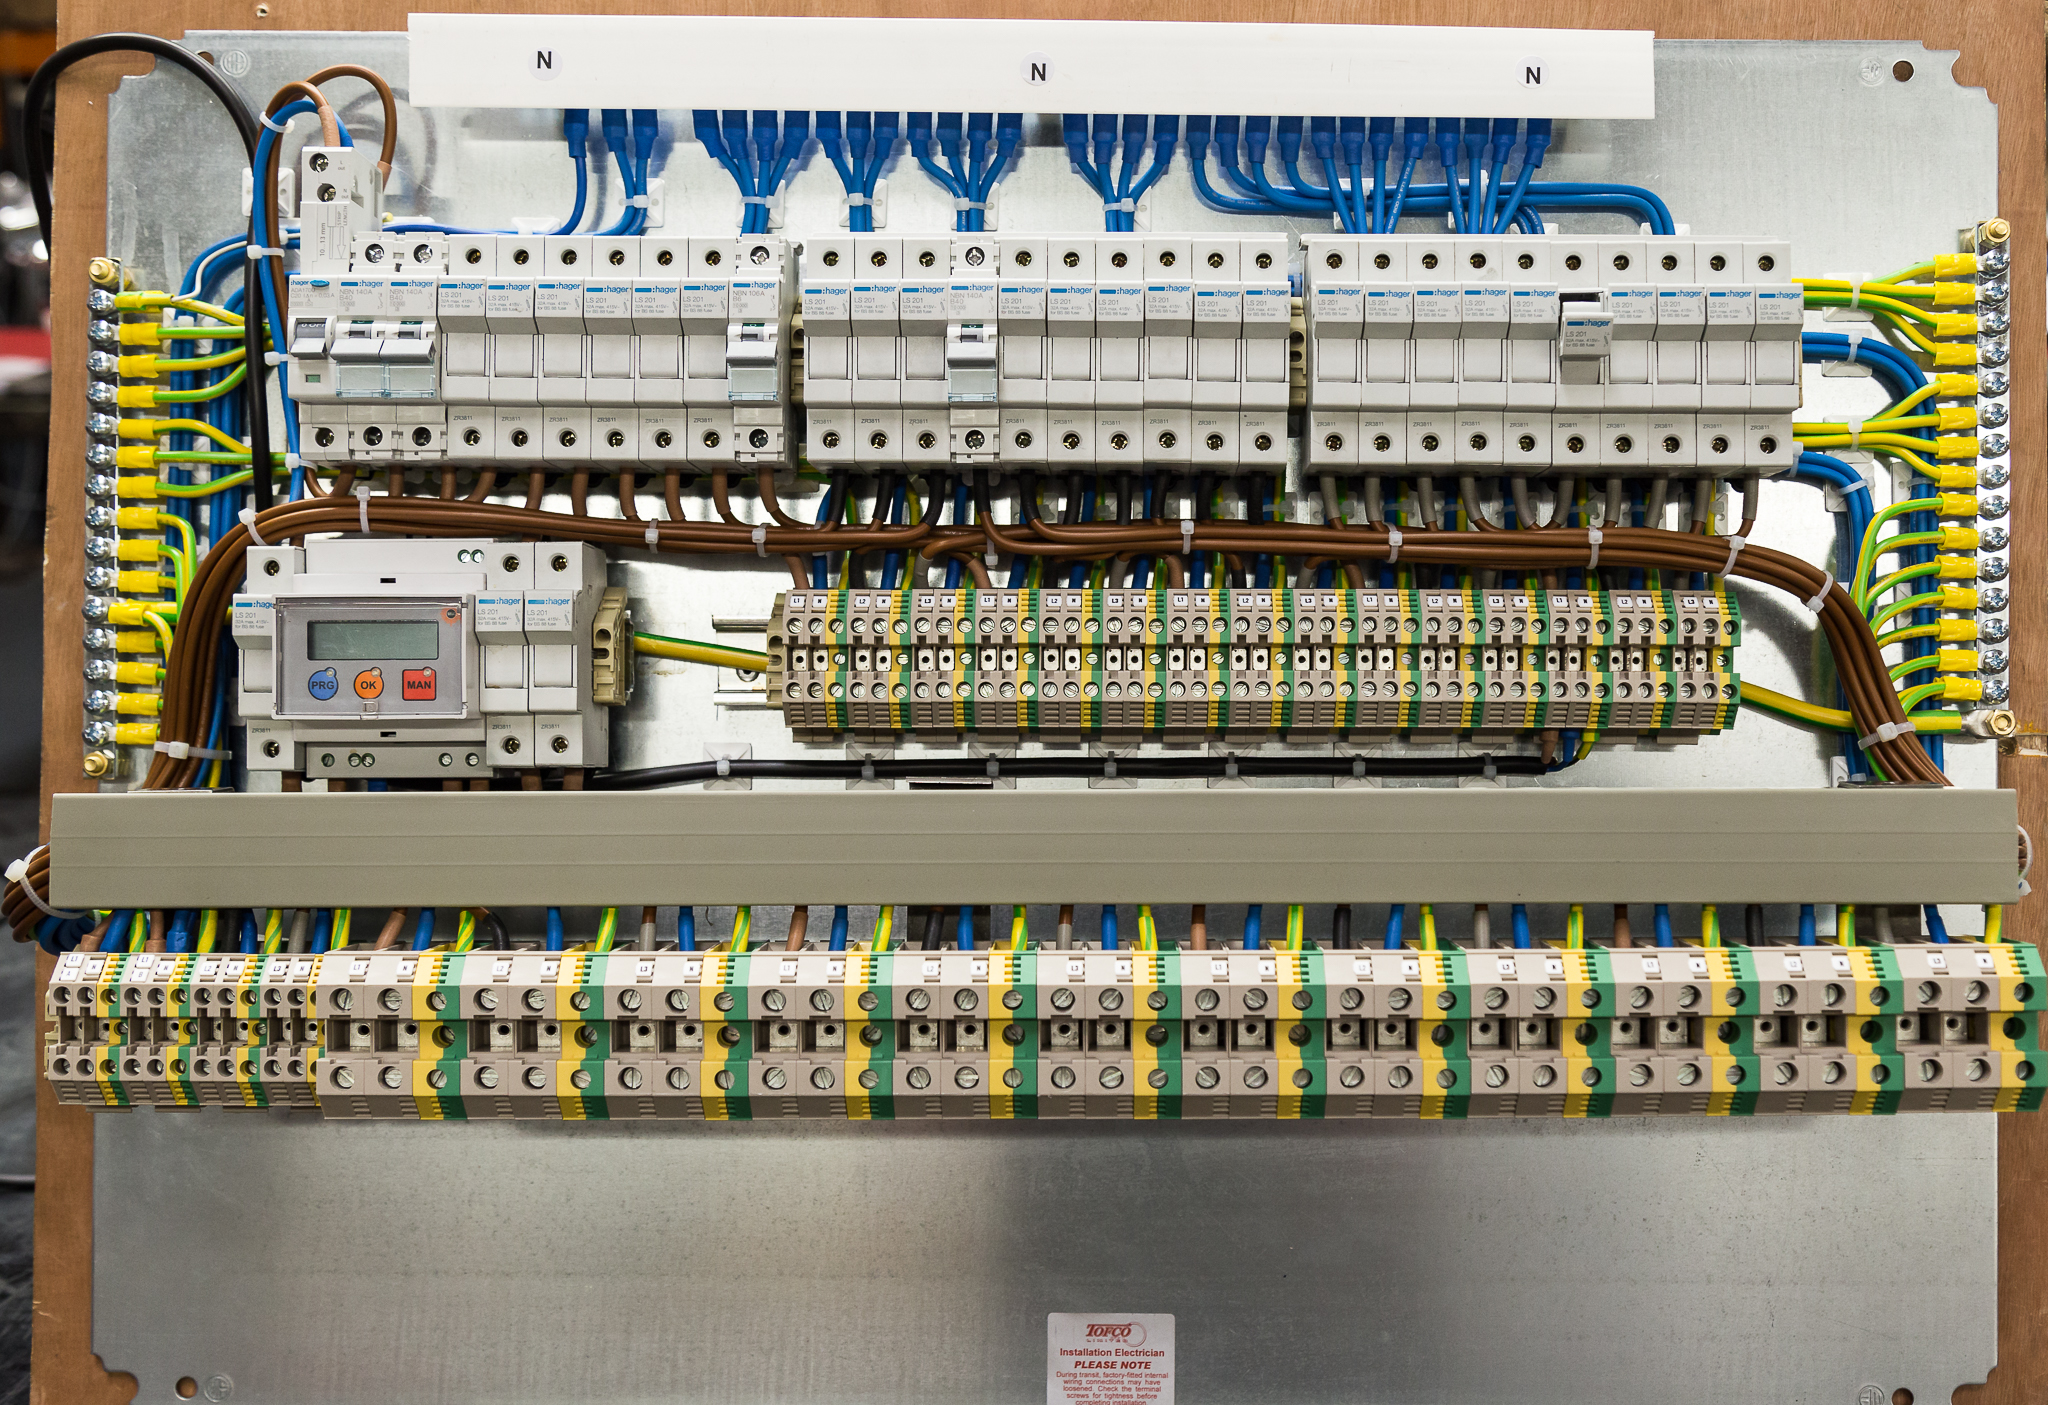 Pre Wired Panels Tofco Cpp Ltd Distribution Box Electrical Panel Buy Circuit Breaker Control Single Or Three Phase Individual Group Switched With A Variety Of Protective Devices Fuses Mcb Rcd Rcbo Etc